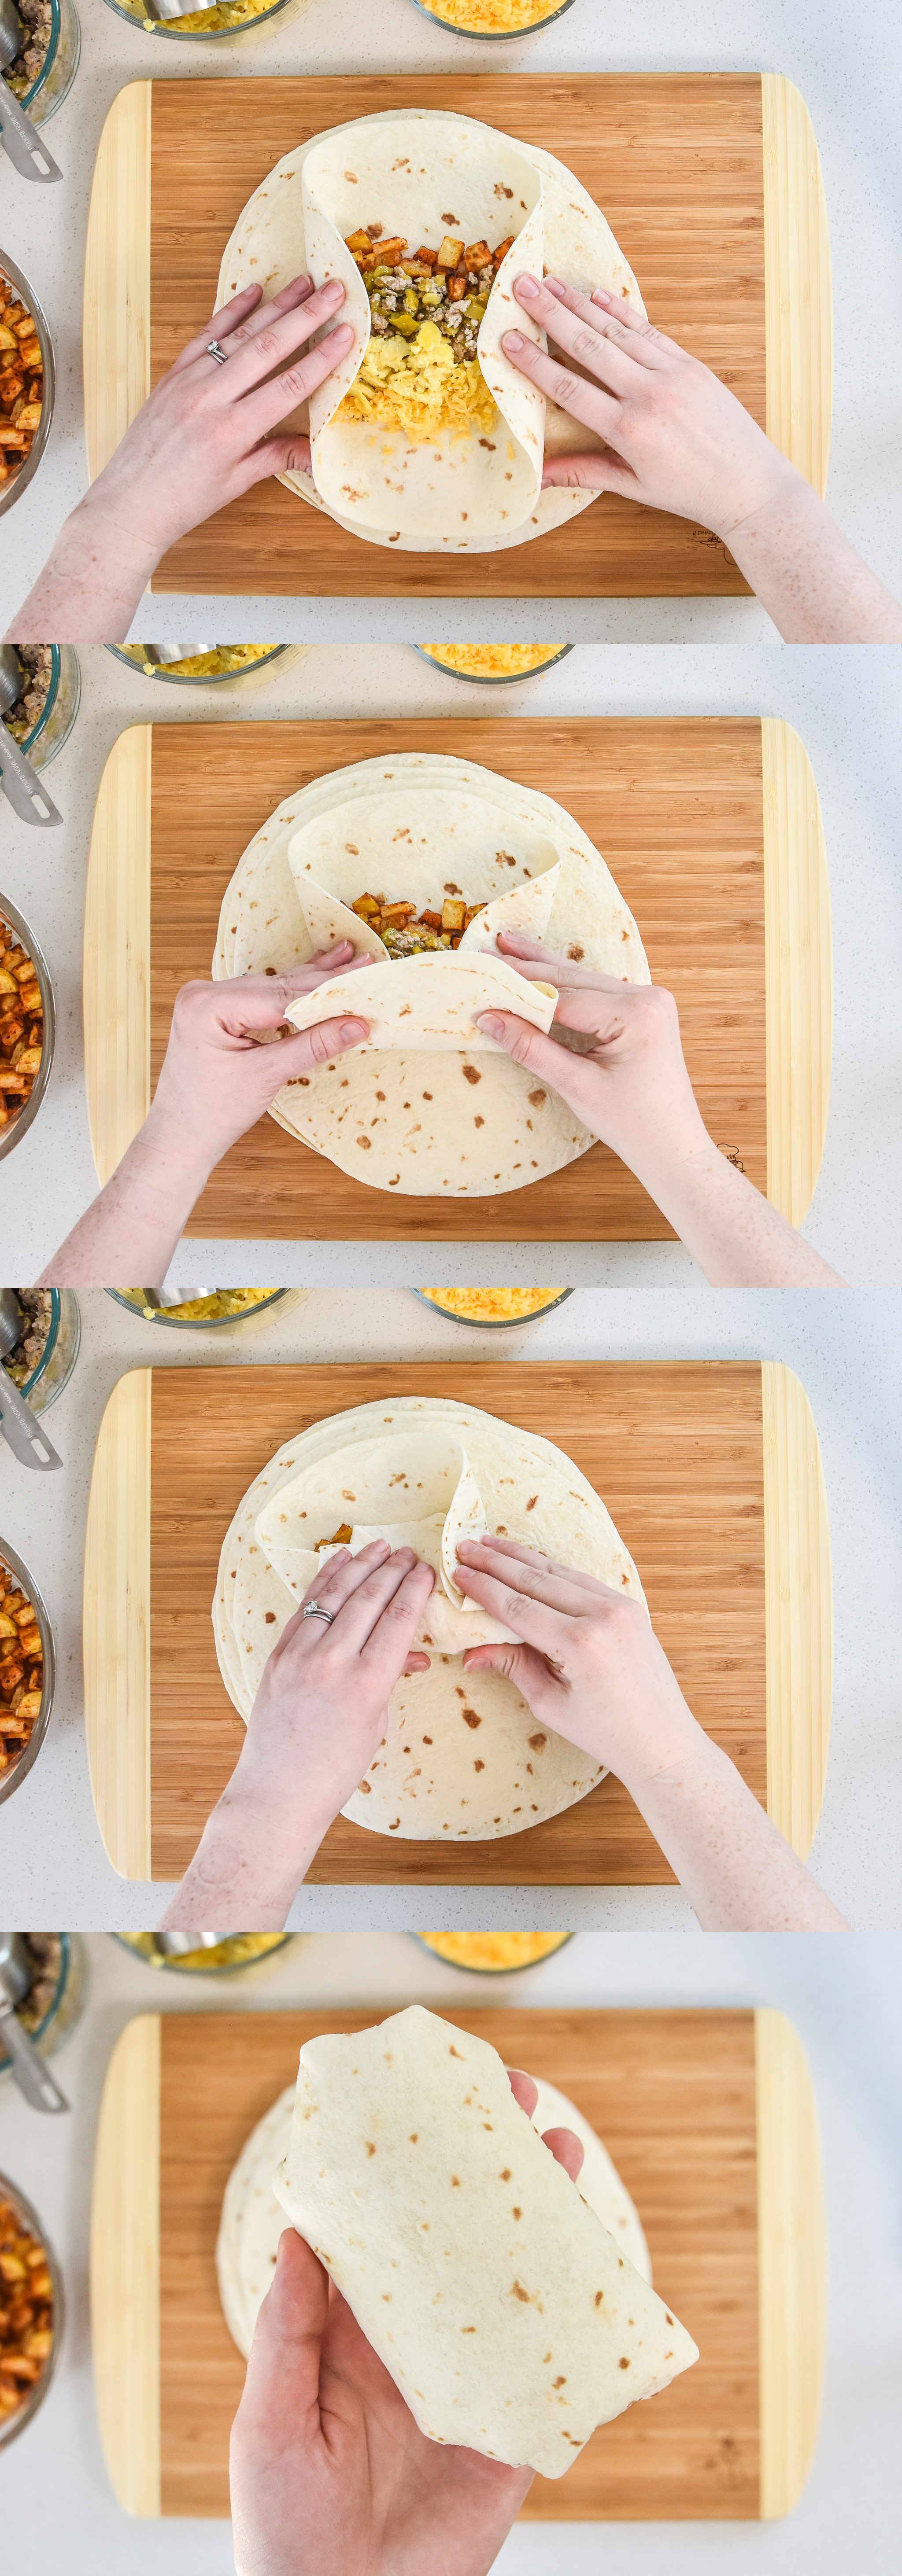 how to wrap an air fryer breakfast burrito